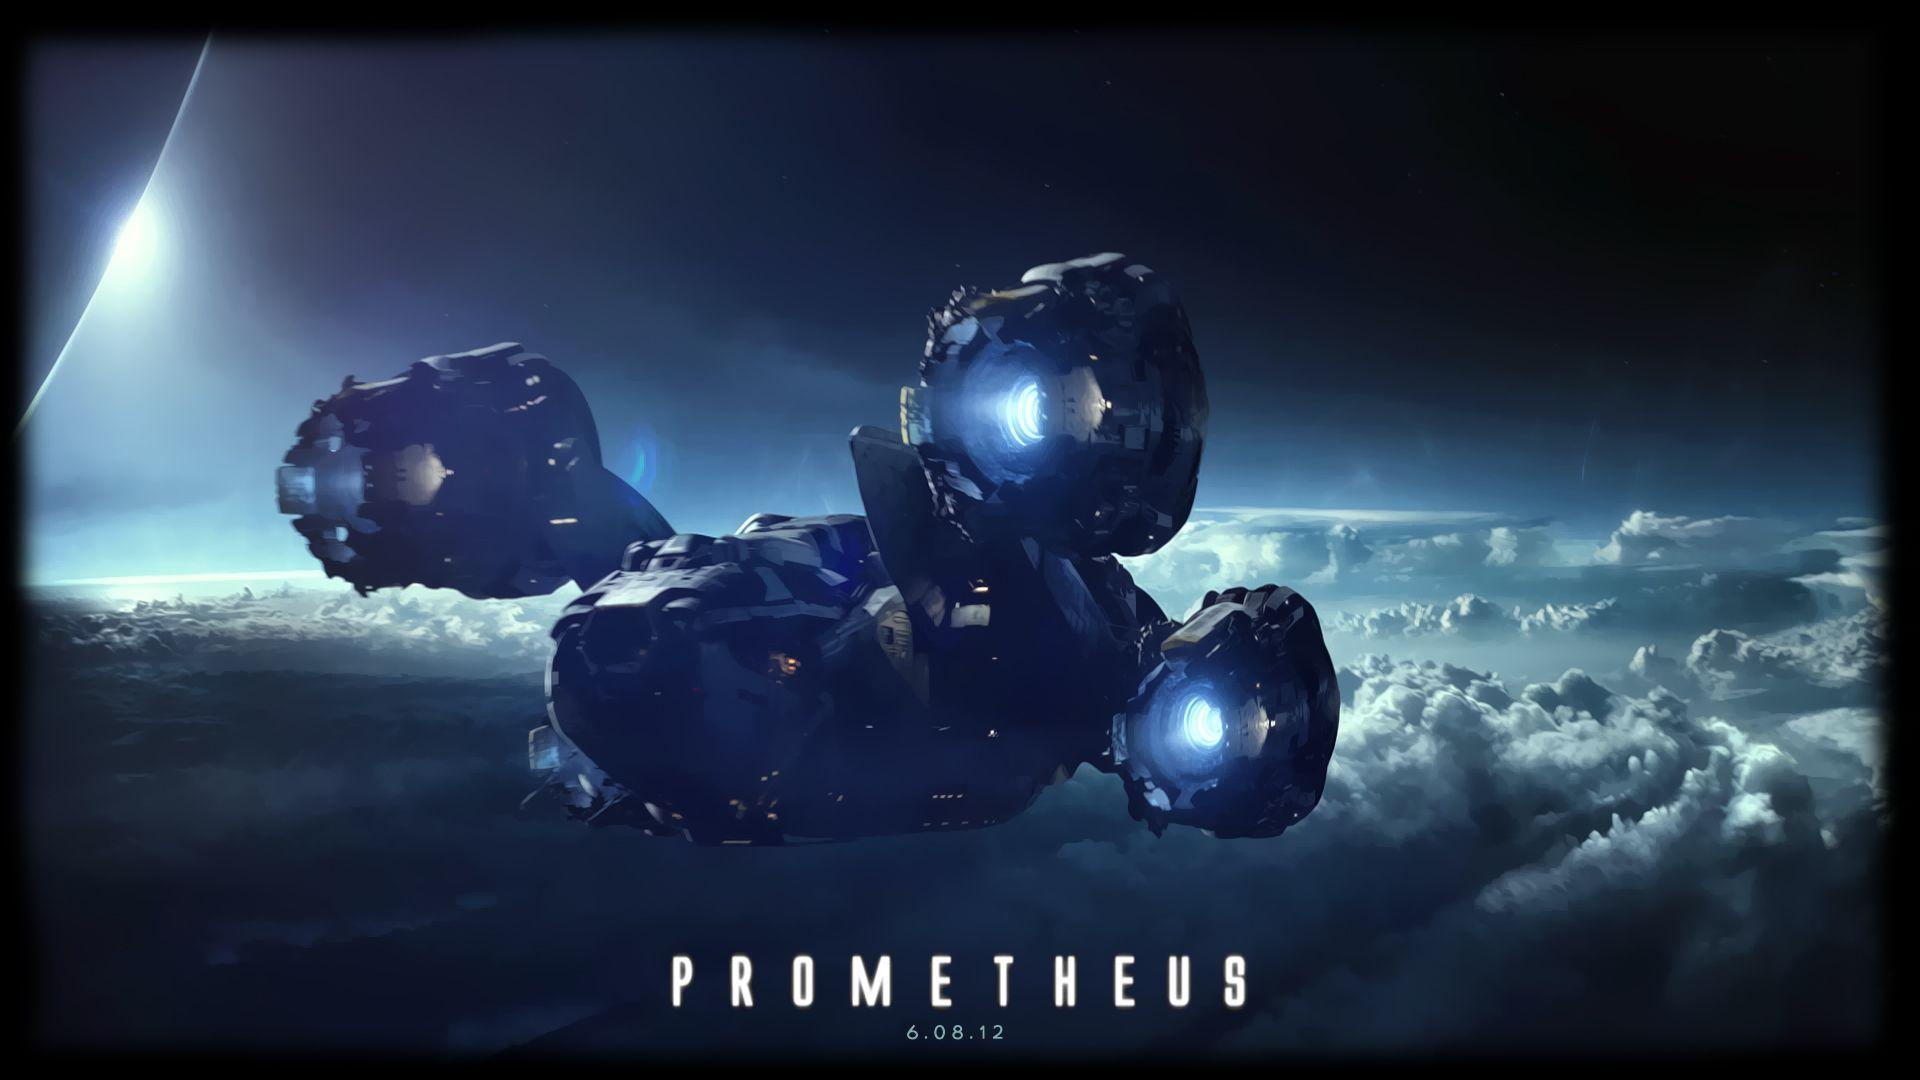 Prometheus Wallpapers, 37++ Prometheus Wallpapers and Photos In